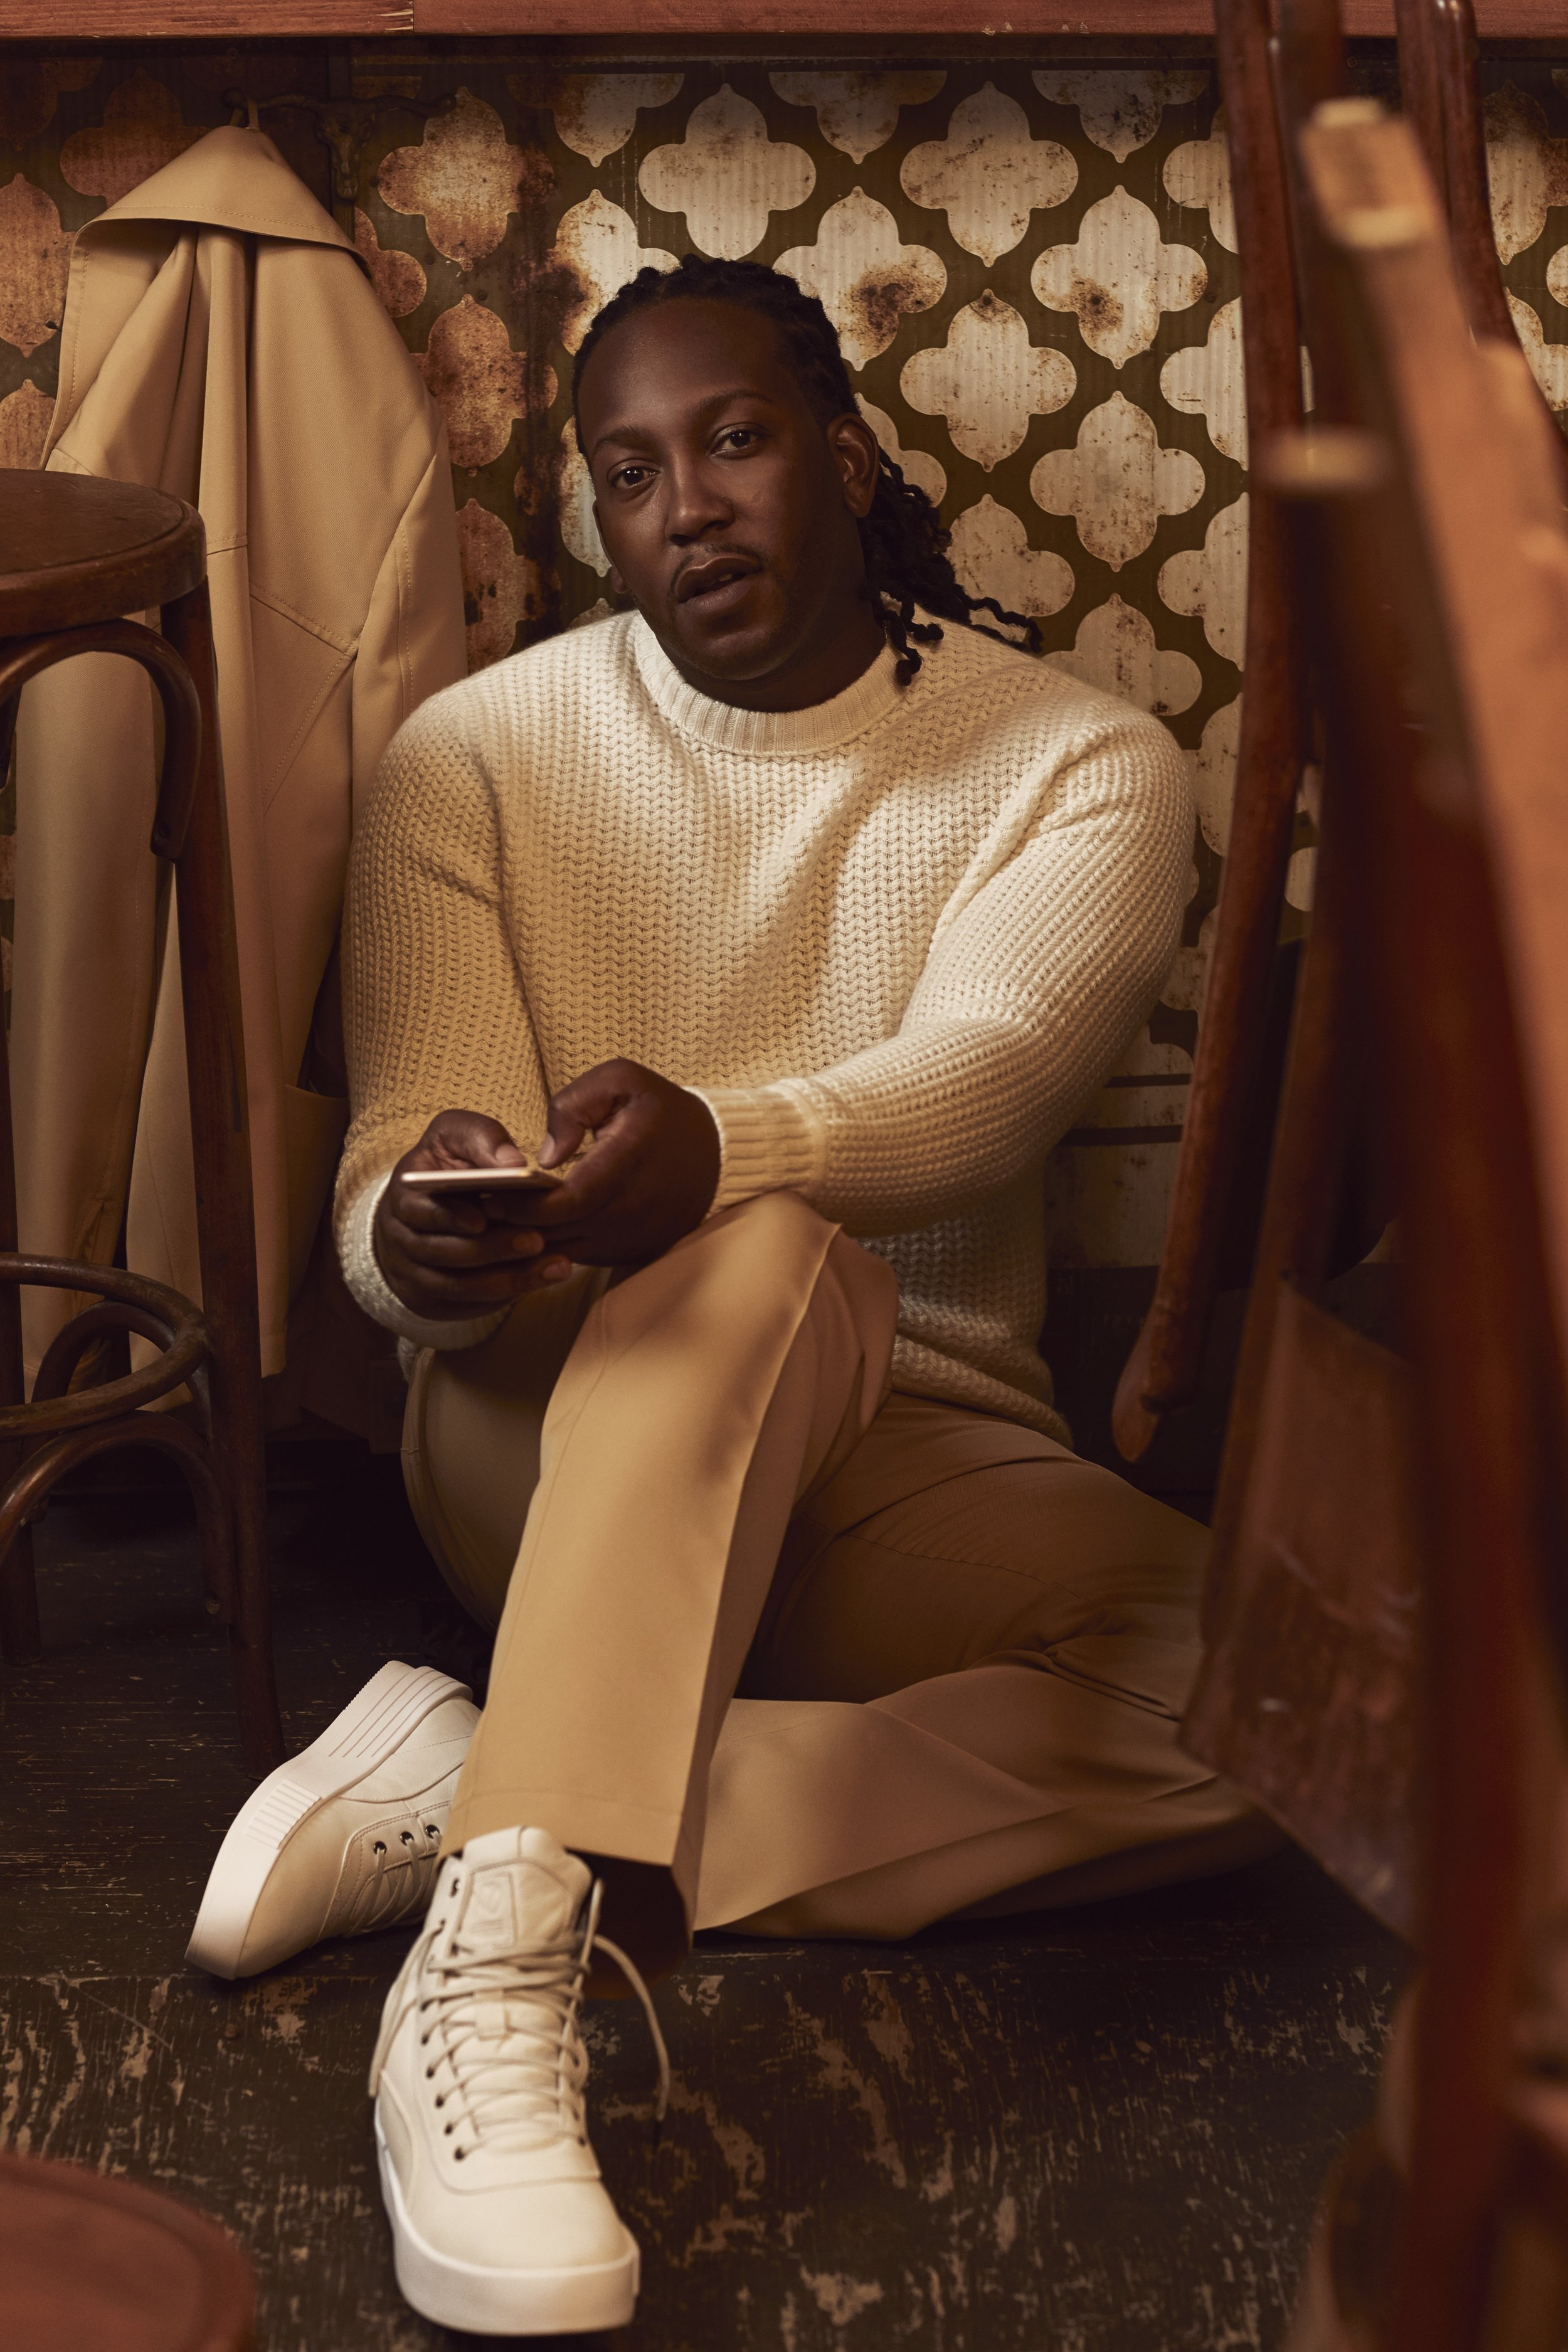 Pants and jacket MARNI at HOLT RENFREW. Sweater BERLUTI at HOLT RENFREW. Shoes THE WEEKEND X PUMA XO COLLECTION.